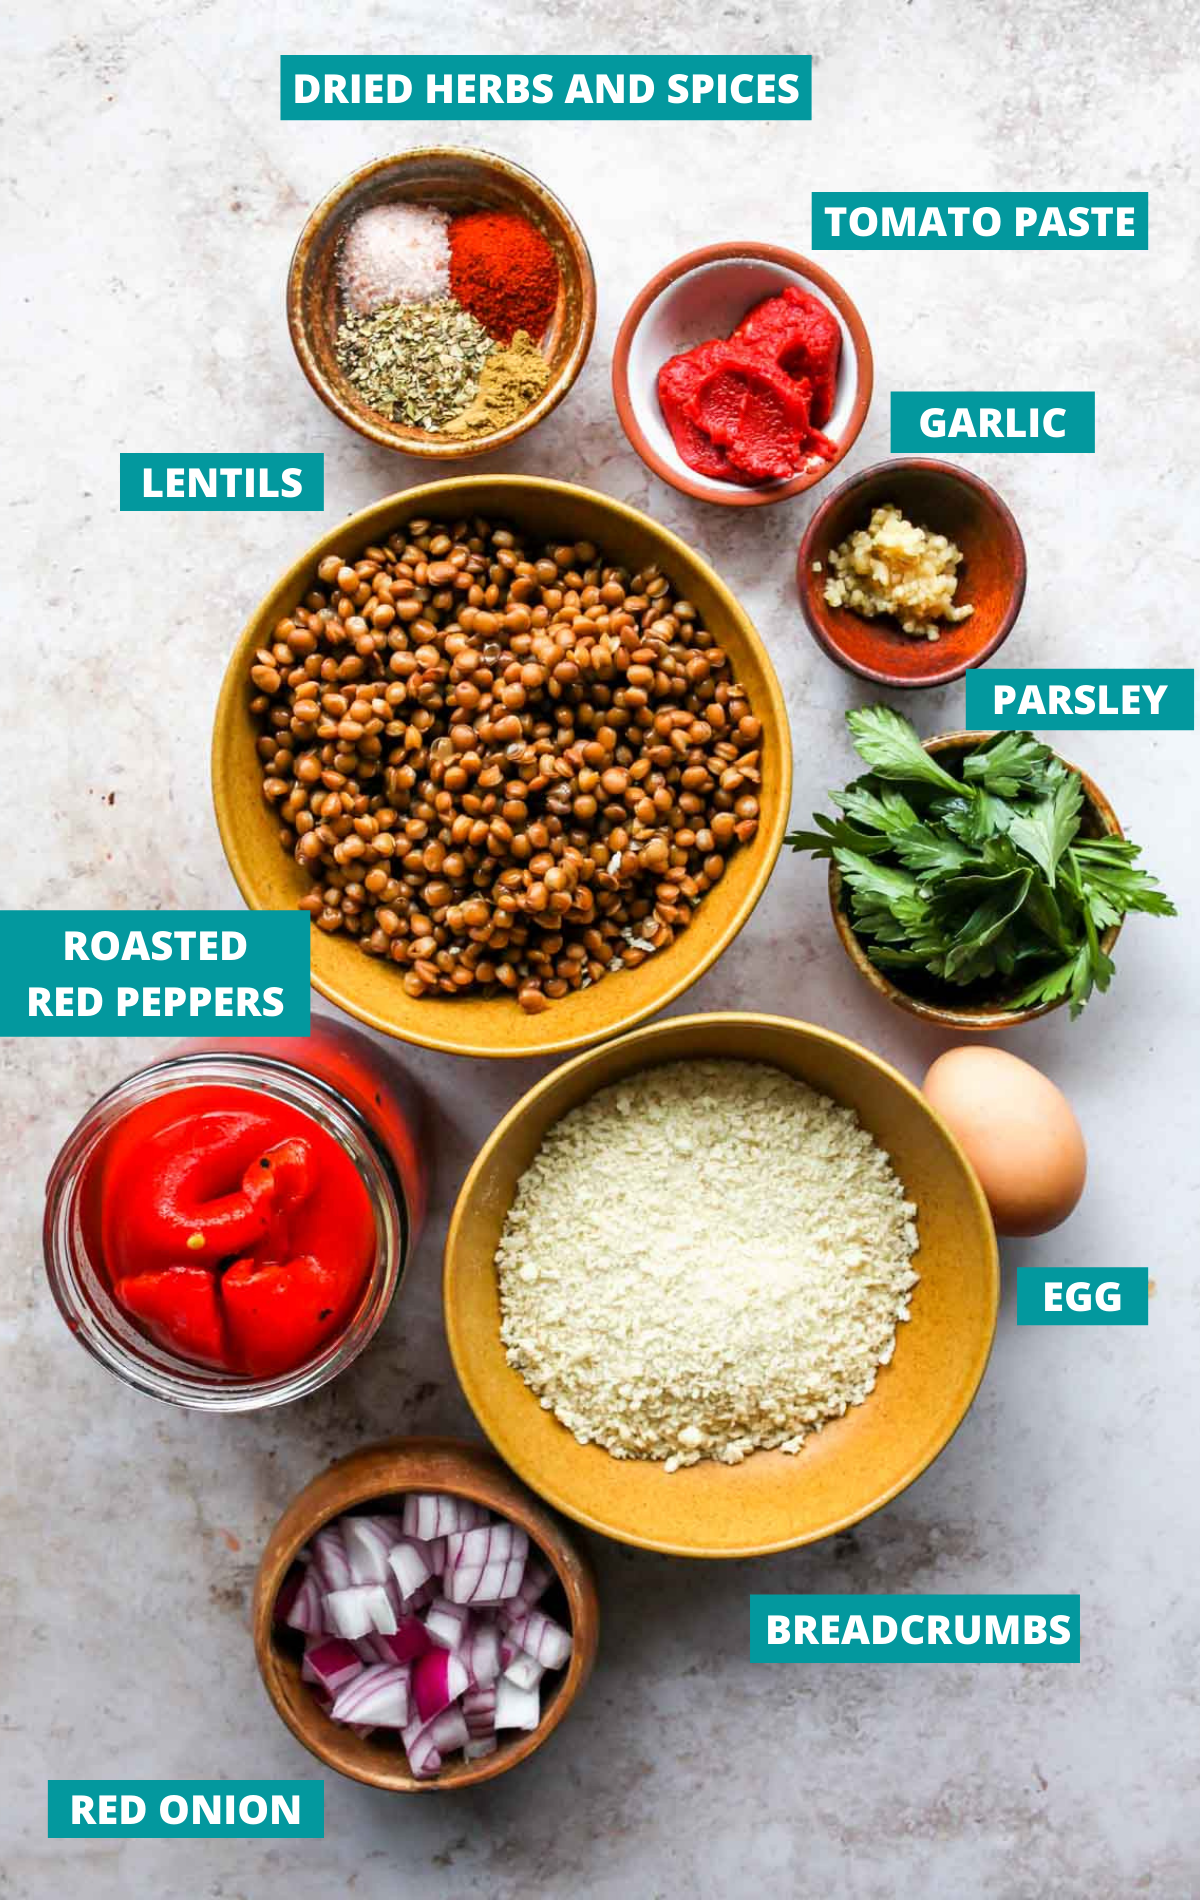 Moroccan Lentil Meatballs With Roasted Red Pepper Sauce Recipe Lentil Meatballs Stuffed Peppers Canned Lentils [ 1900 x 1200 Pixel ]